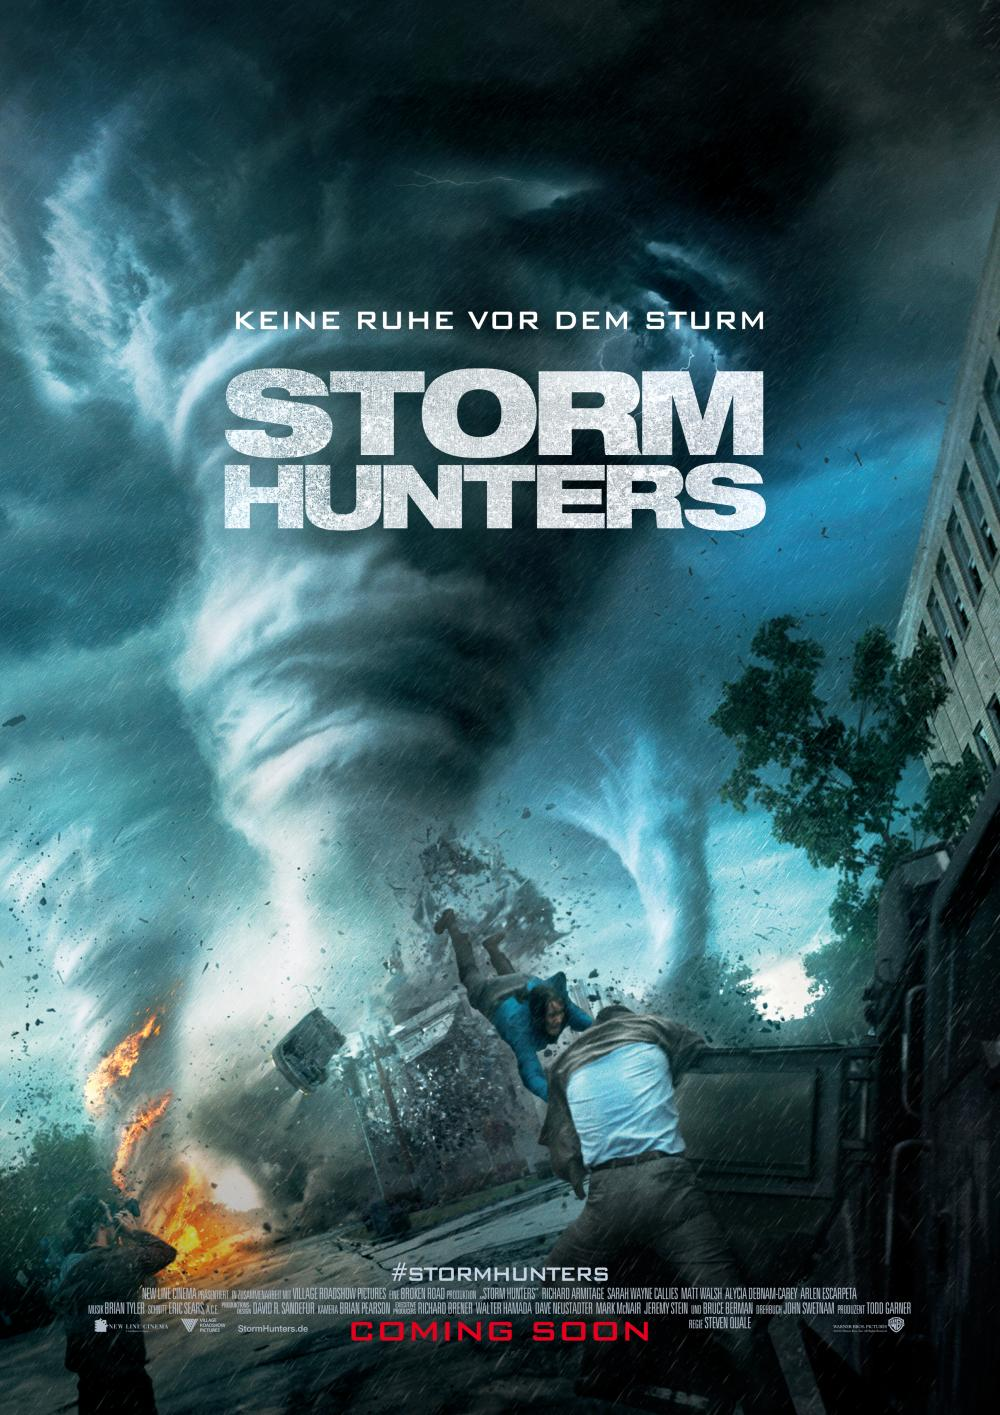 Stormhunters